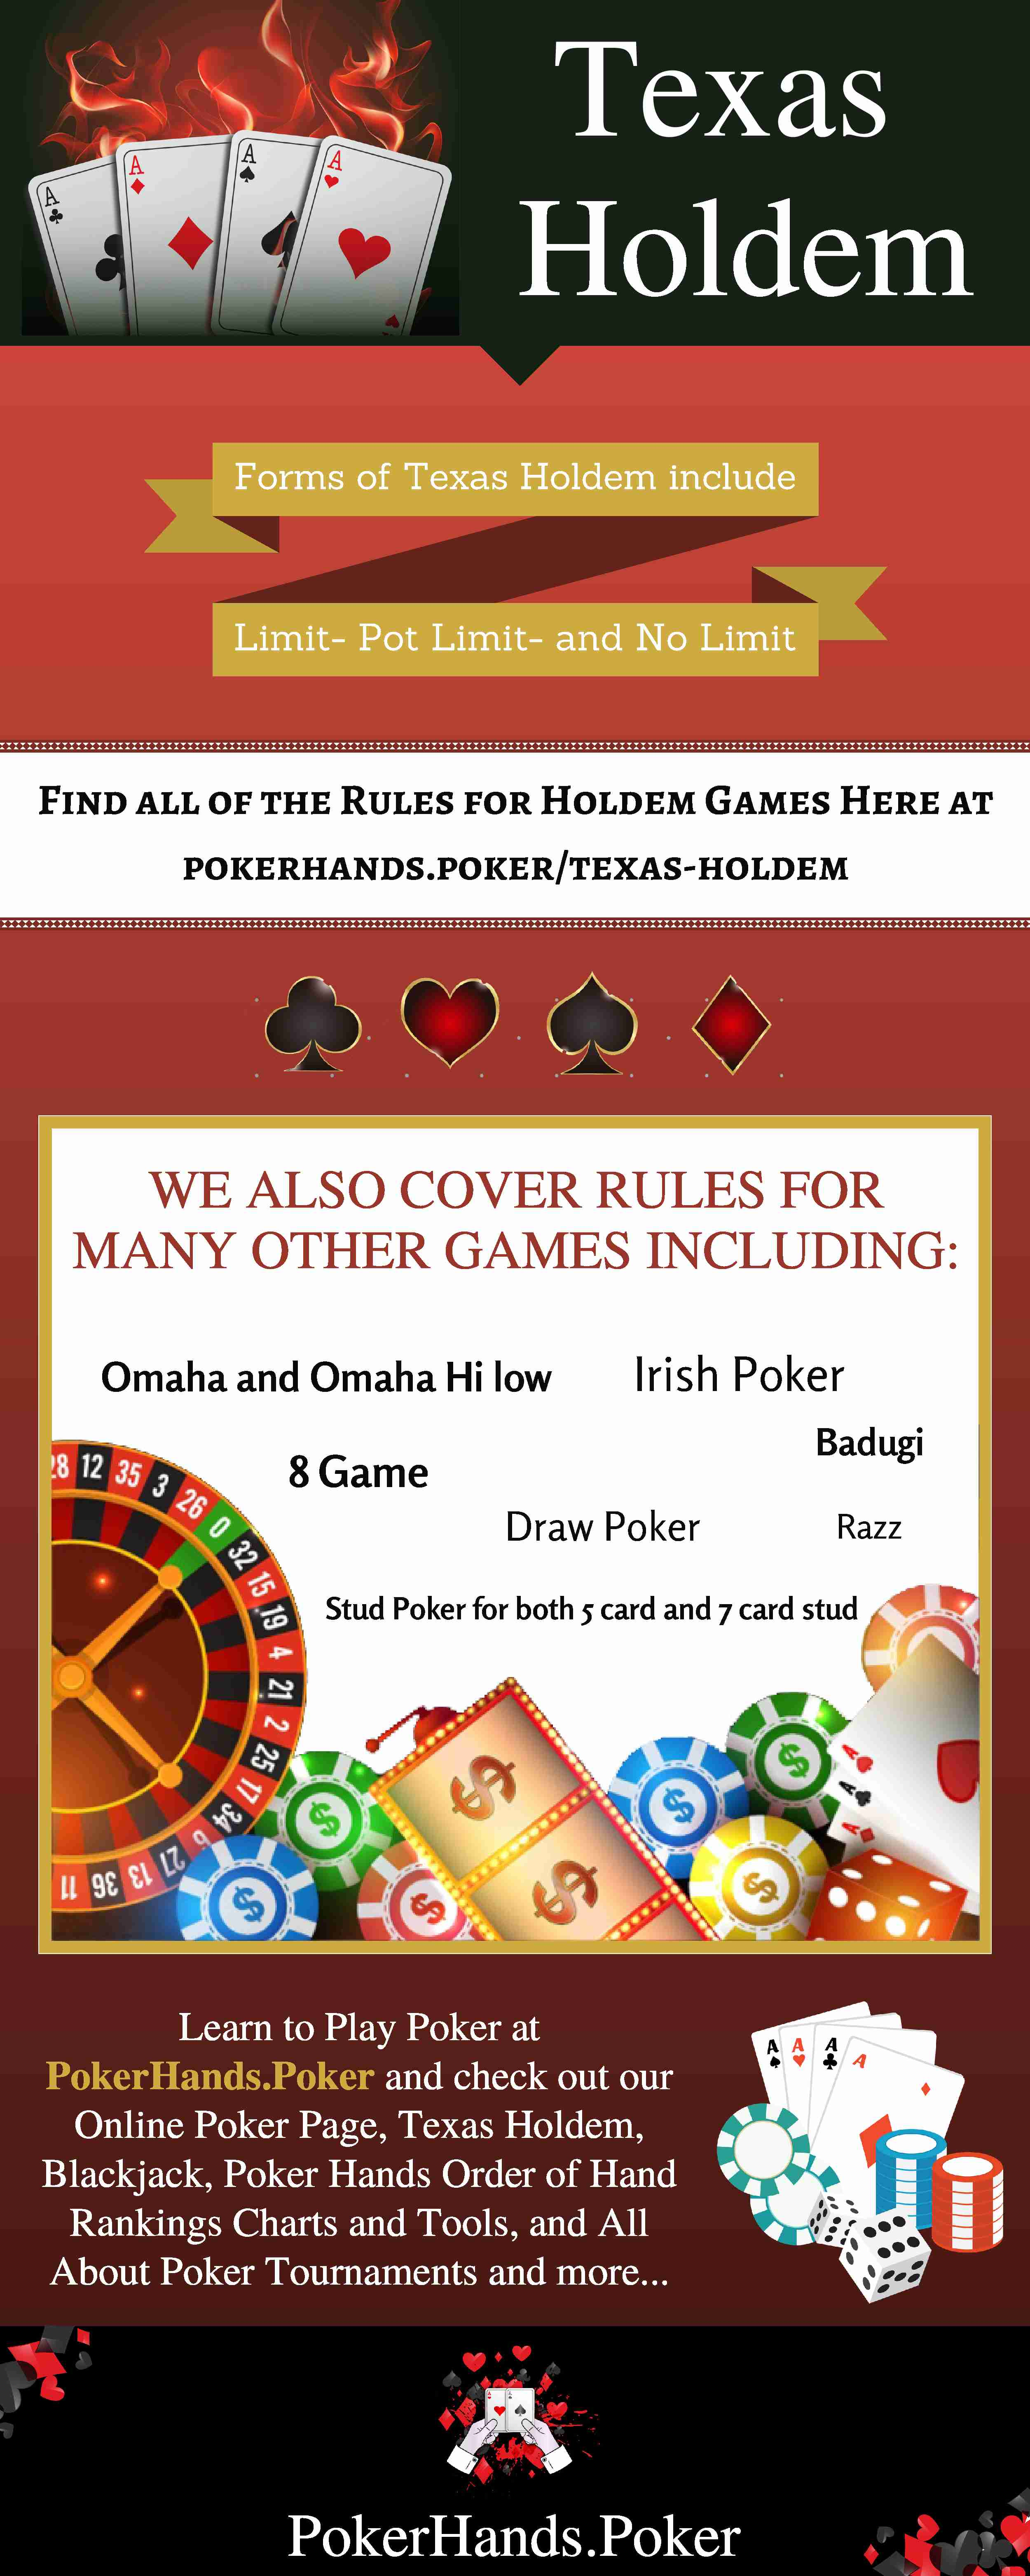 Best Texas Holdem Poker Sites 1 Most Trusted Downloads